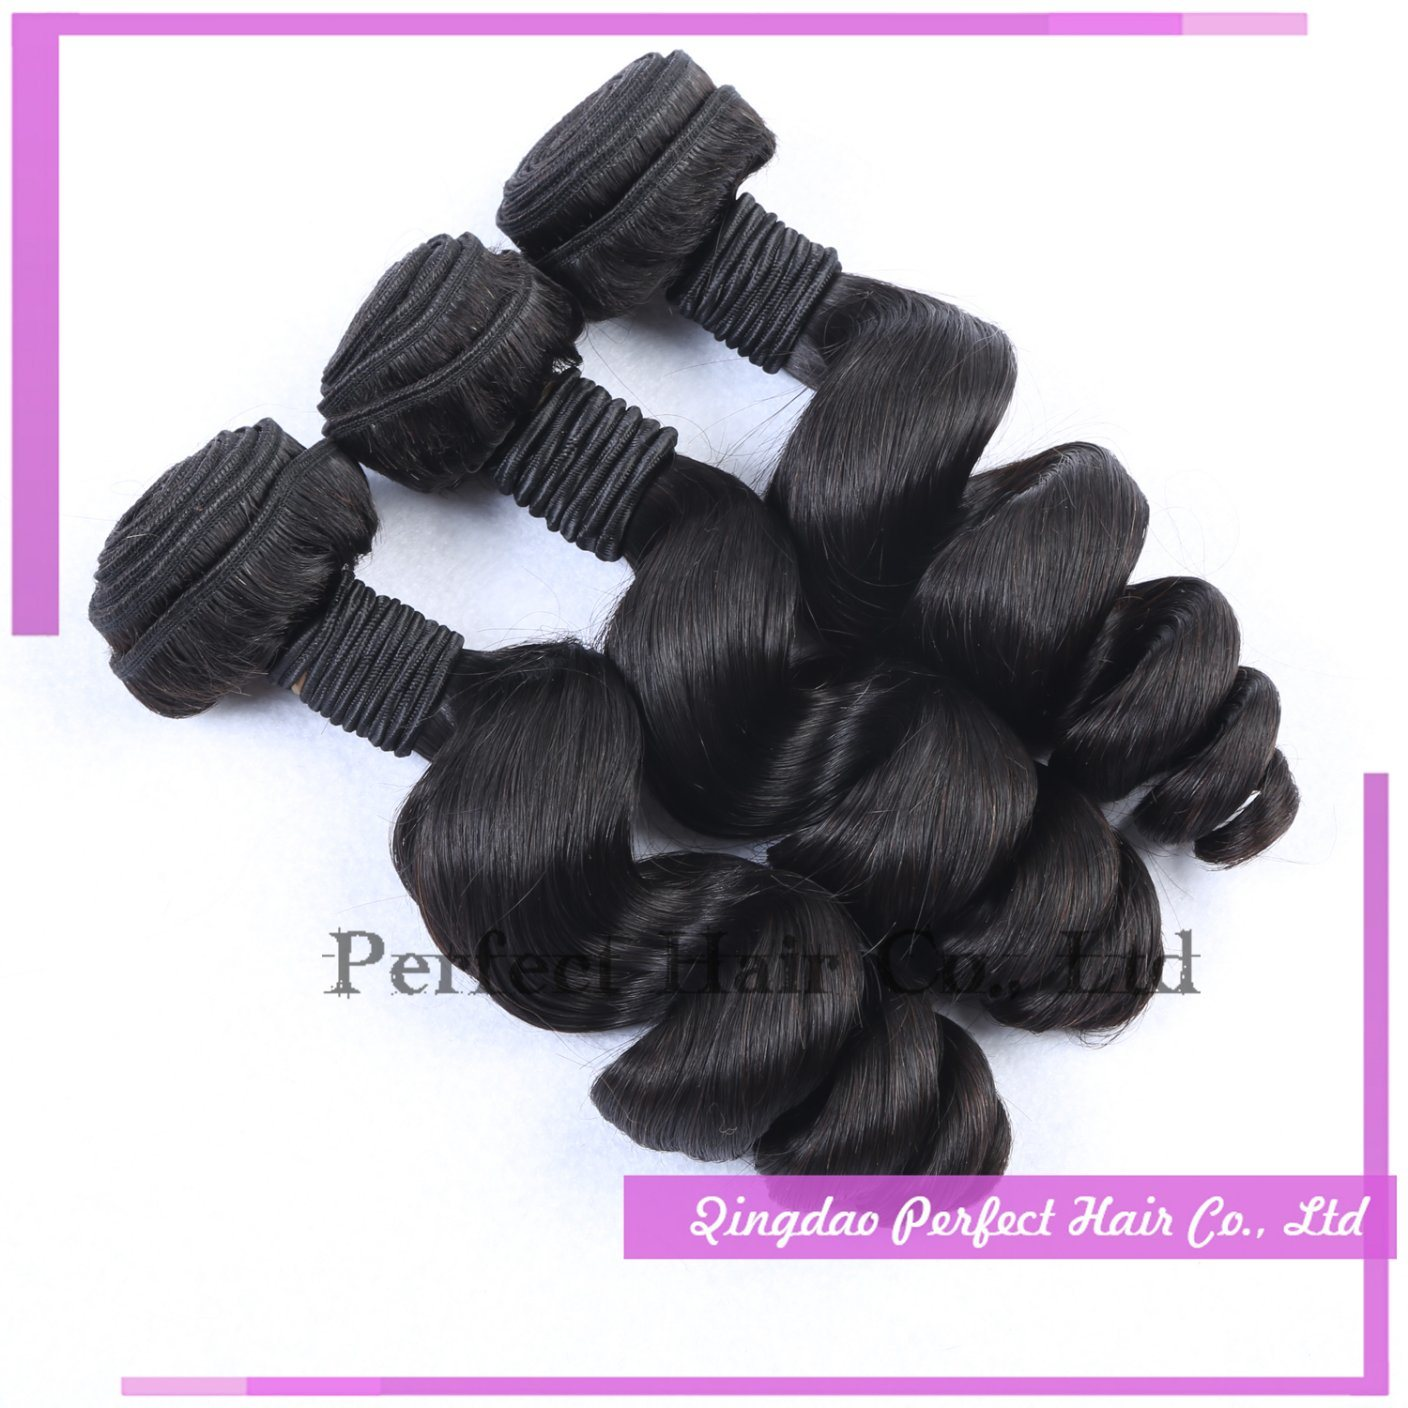 European Hair Wefts in Stock, Different Types of Hair Extensions